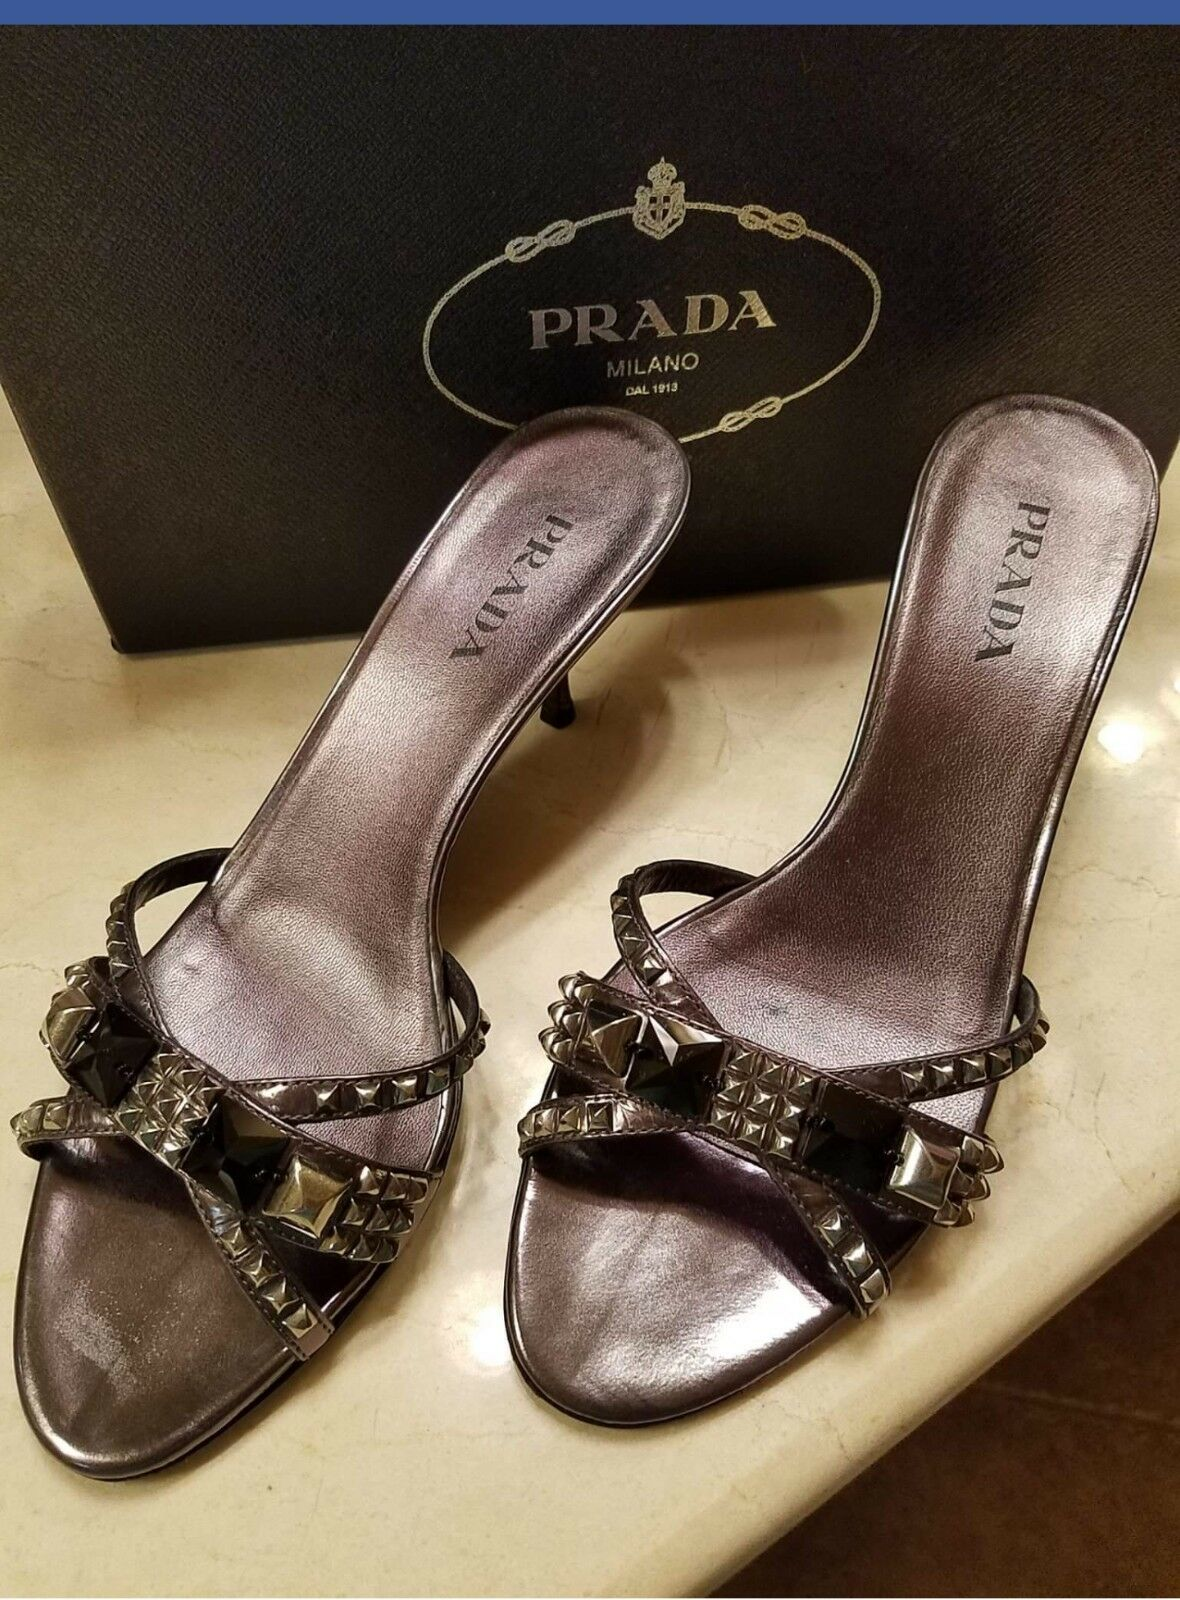 Prada Donna Shoes Size 39 Pewter Heel  Pelle Kitten Heel Pewter a3cdf0